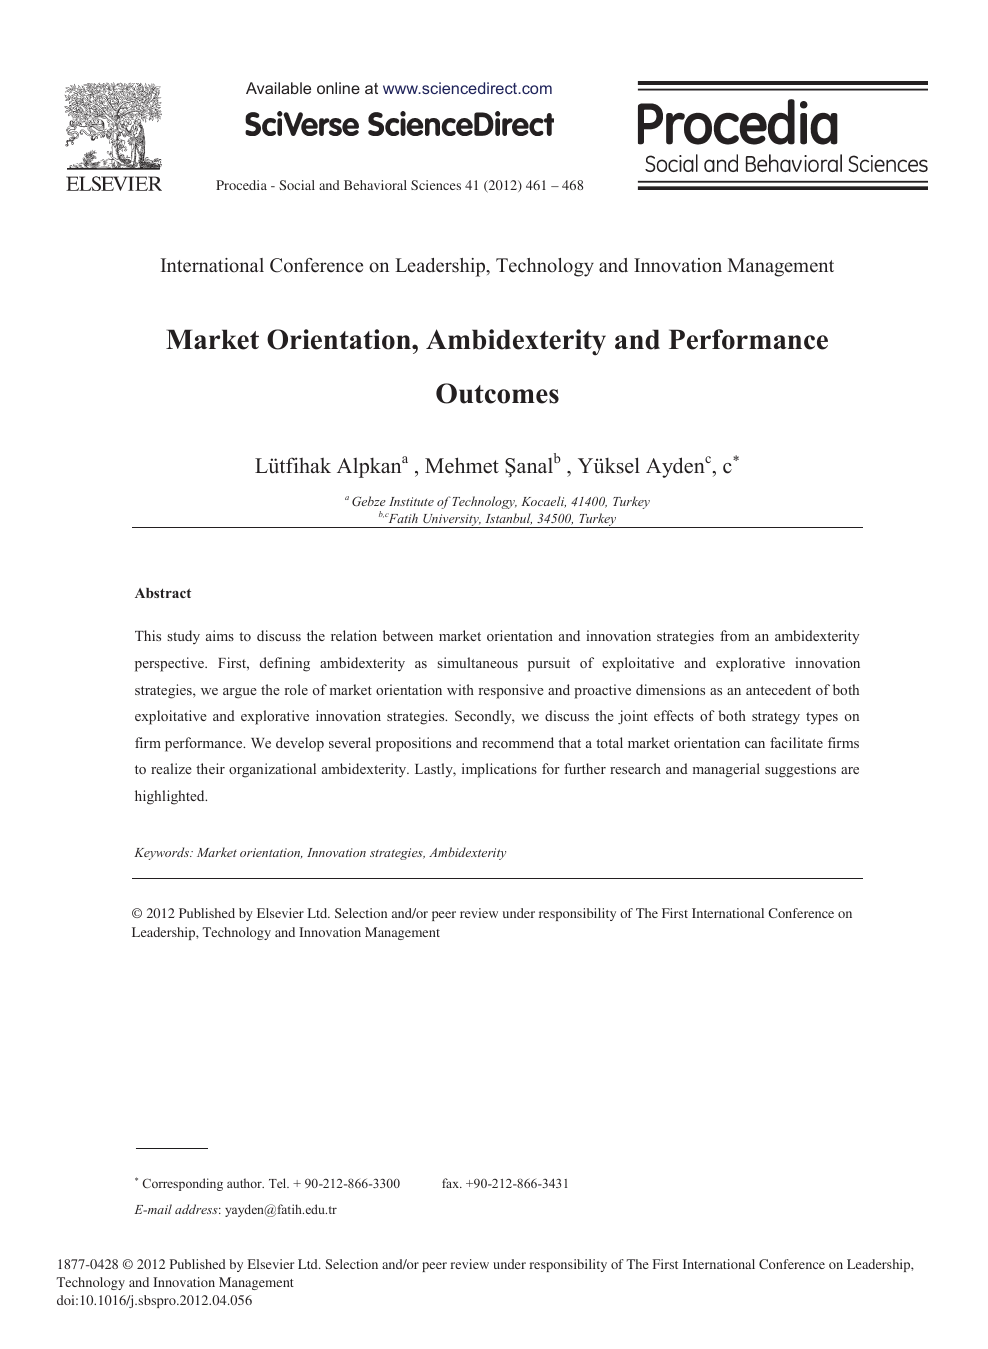 Market Orientation Ambidexterity And Performance Outcomes Topic Of Research Paper In Economics And Business Download Scholarly Article Pdf And Read For Free On Cyberleninka Open Science Hub